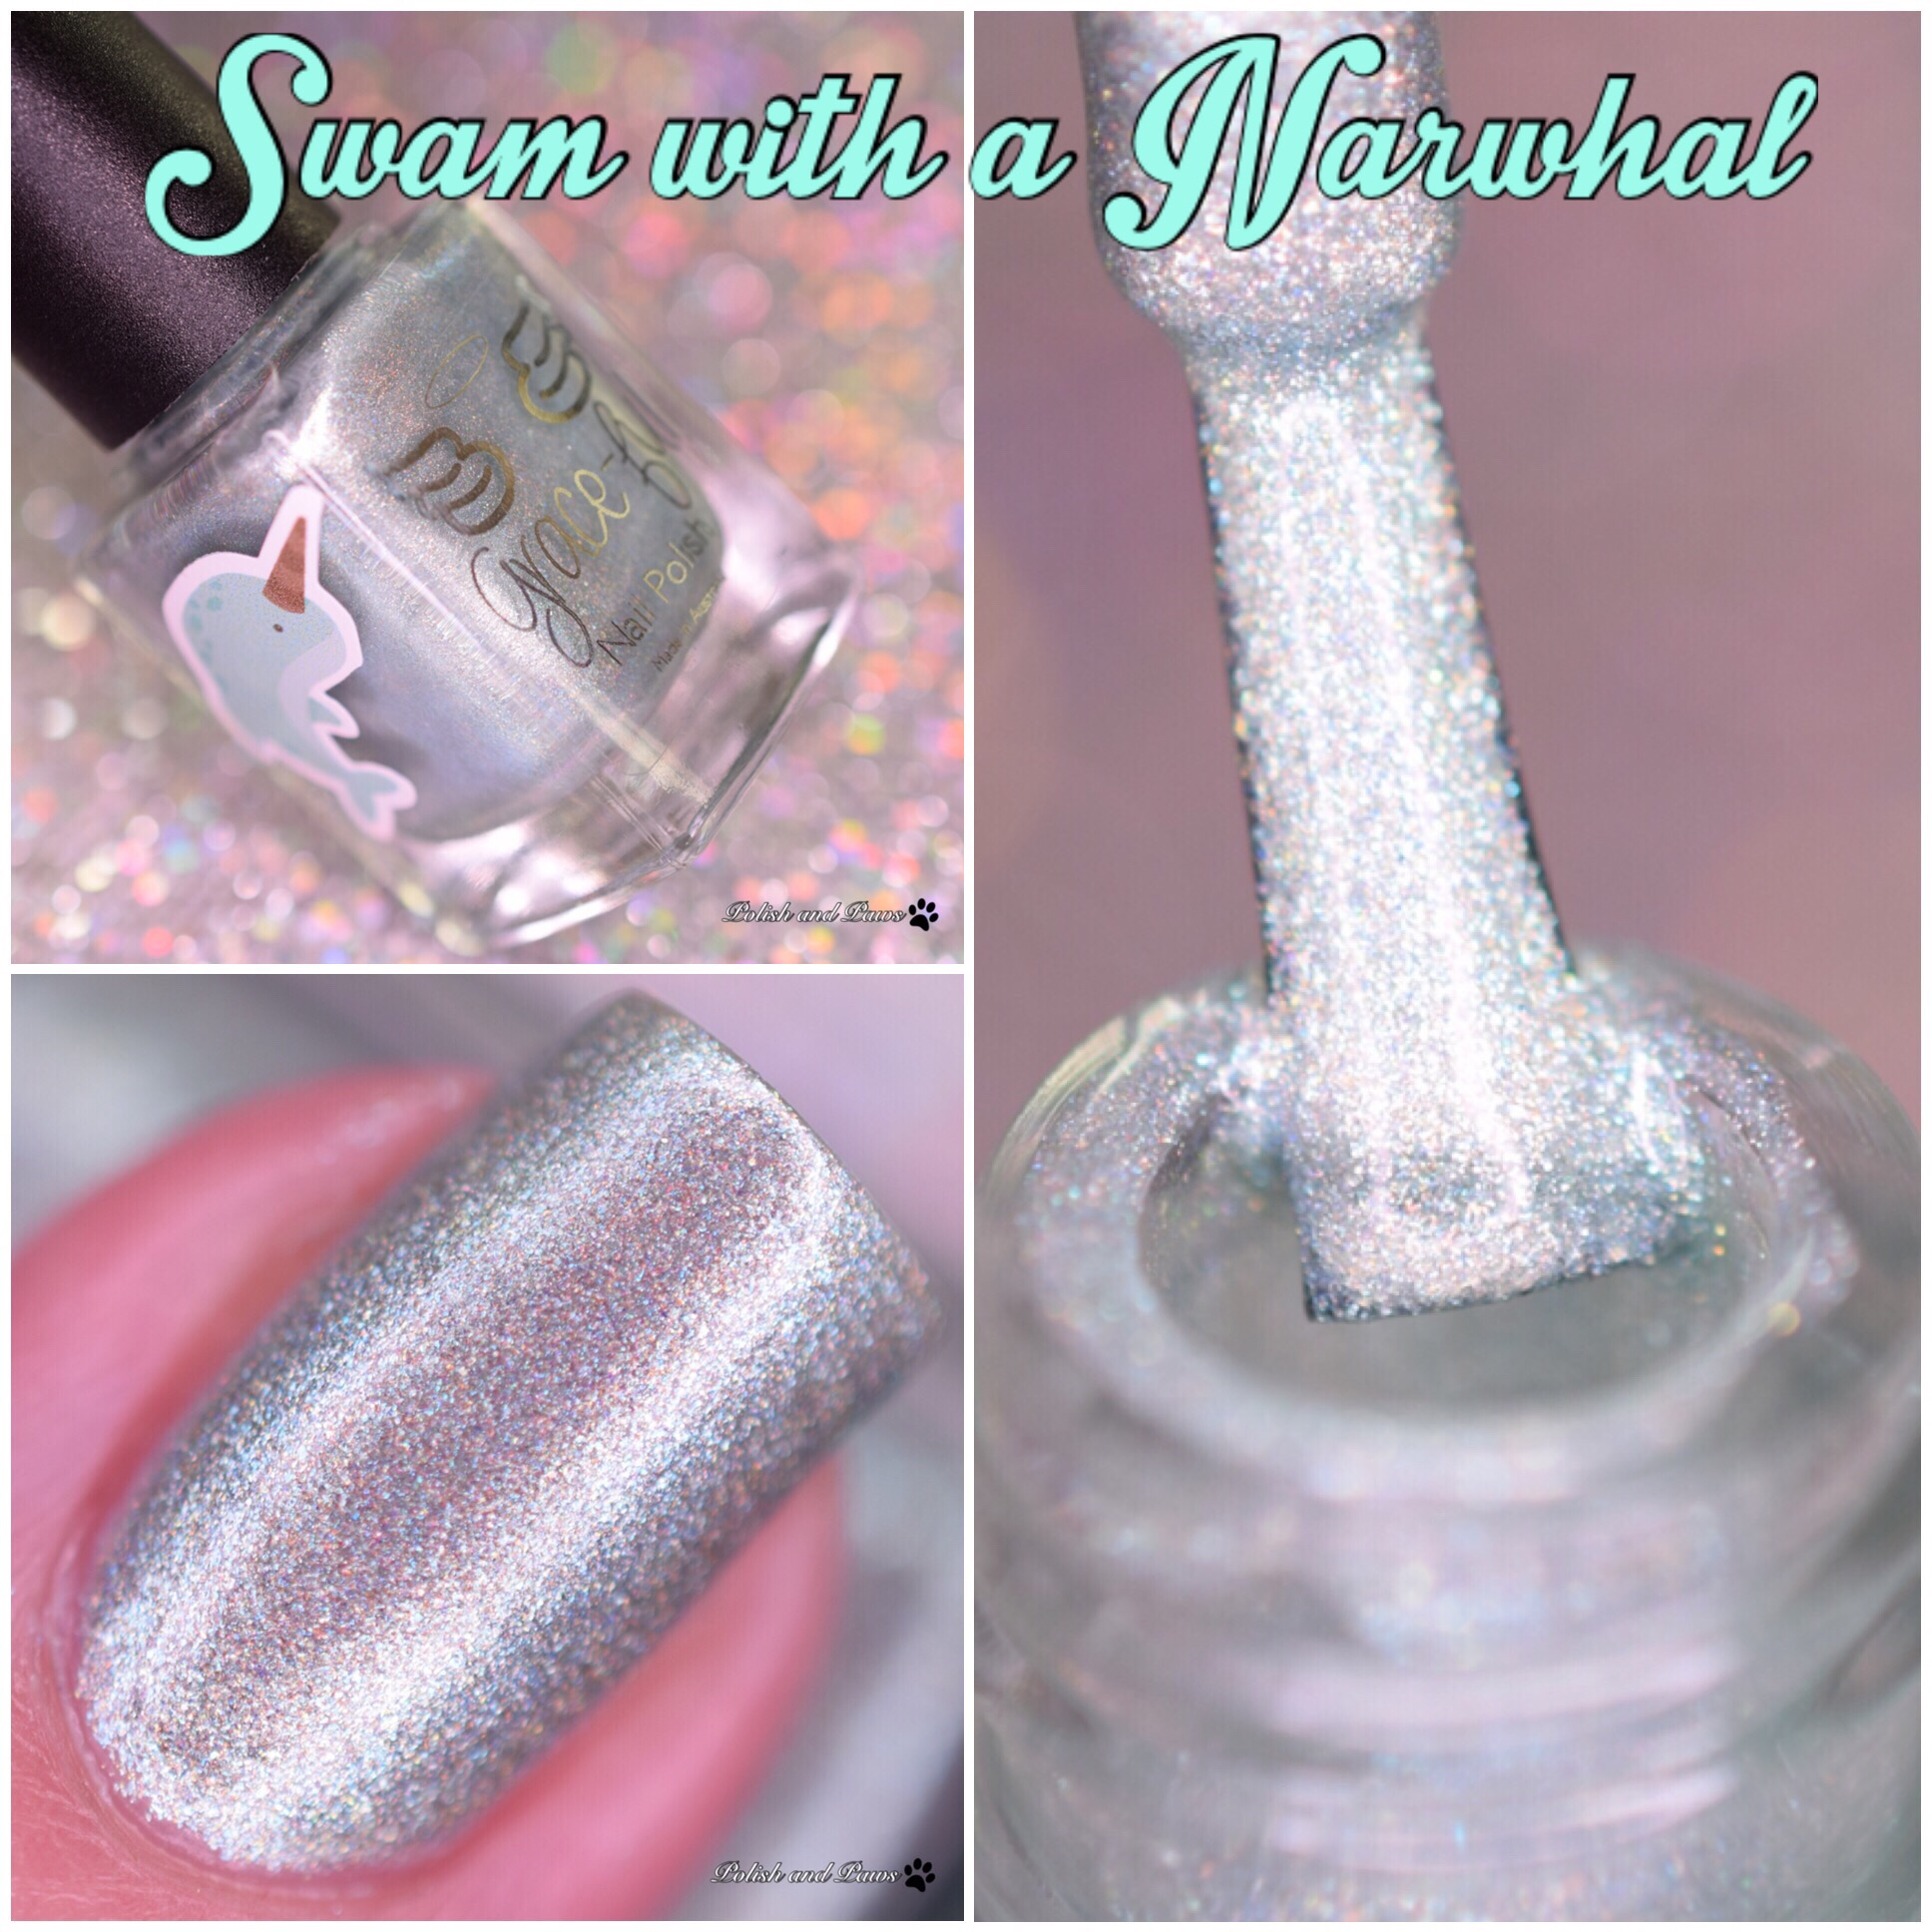 Grace-full Nail Polish Swam with a Narwhal